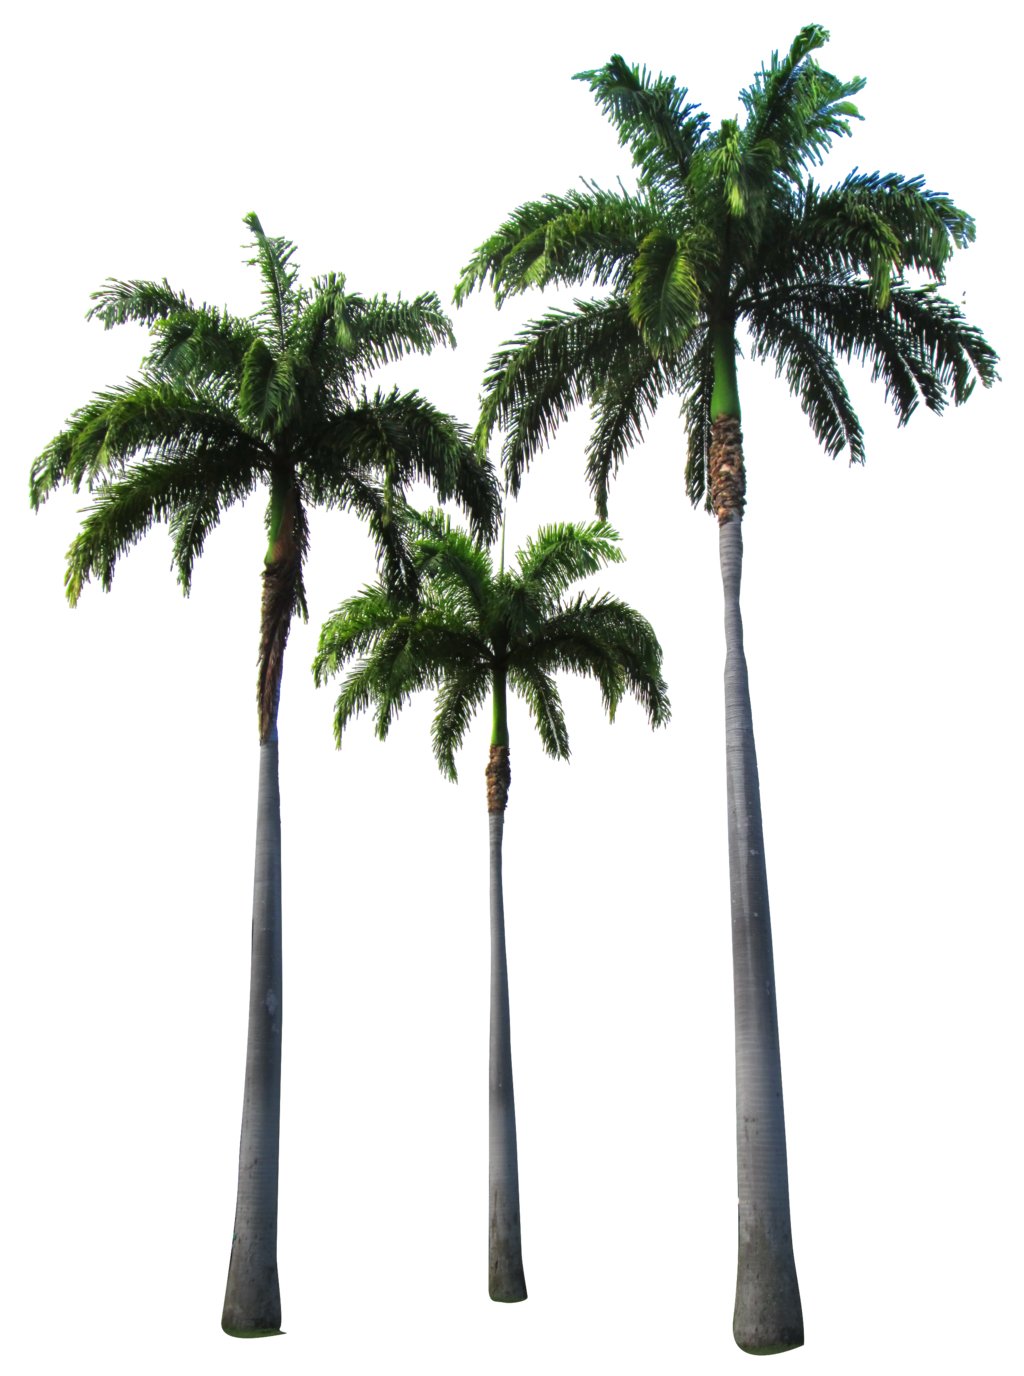 Dead Palm Tree Png - Palm Transparent PNG Pictures - Free Icons and PNG Backgrounds